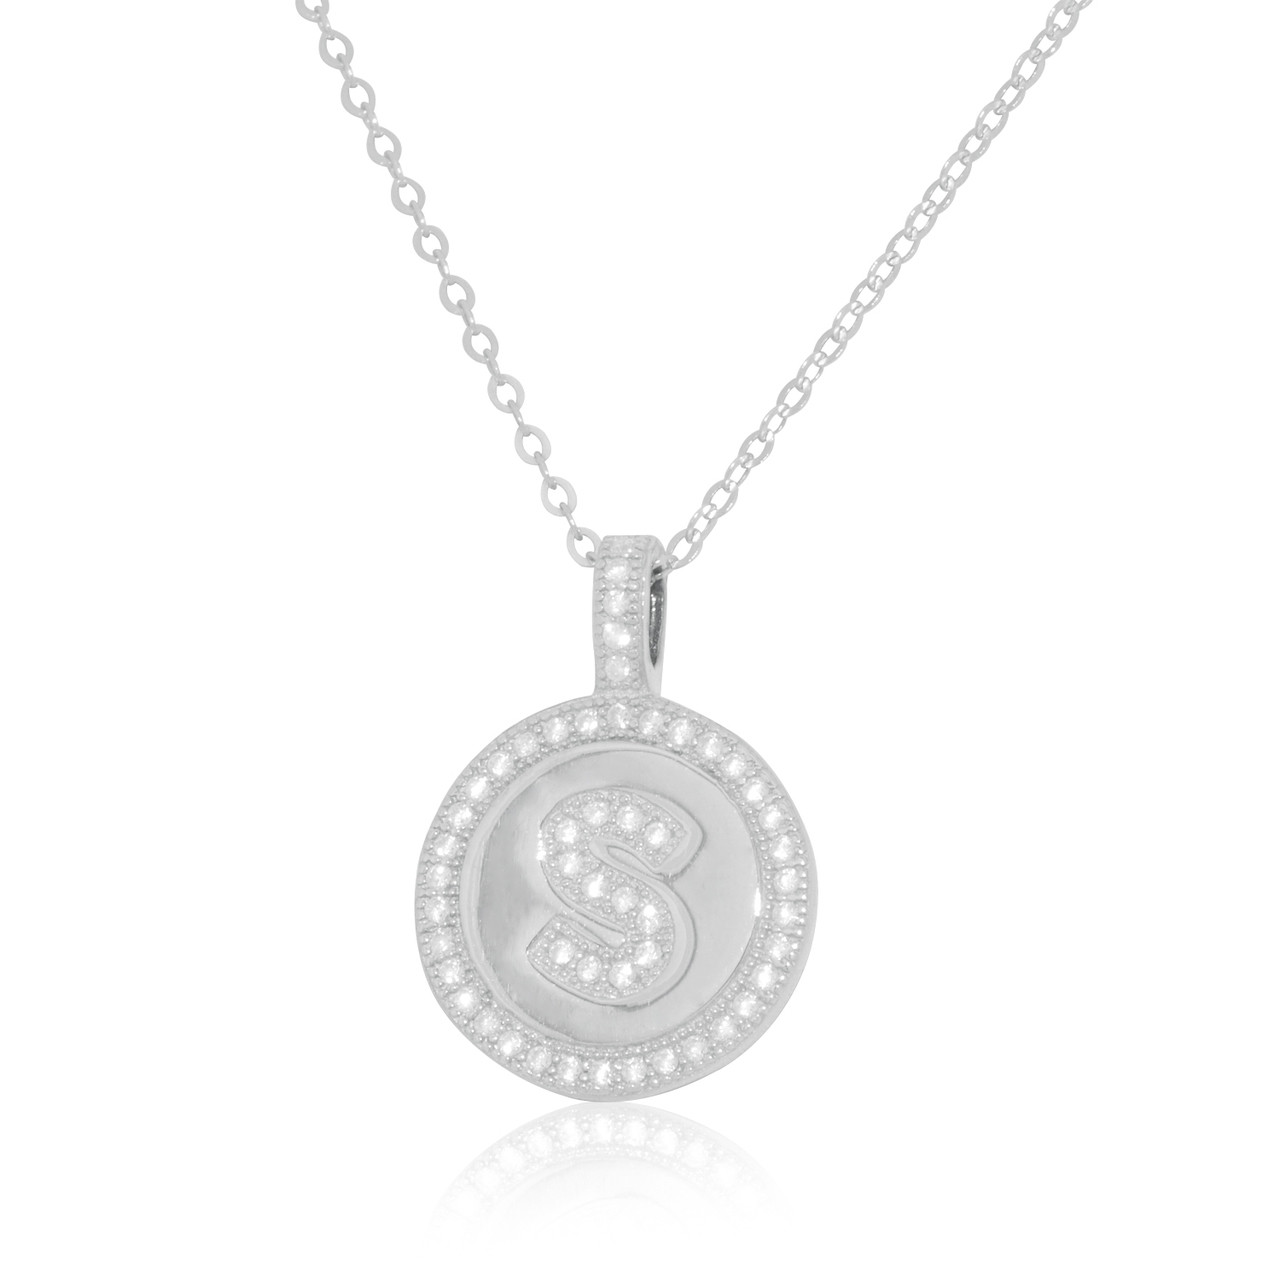 3423789f0dfd0 ... Sterling Silver Cubic Zirconia S Initial Charm Necklace 83210054. Image  1